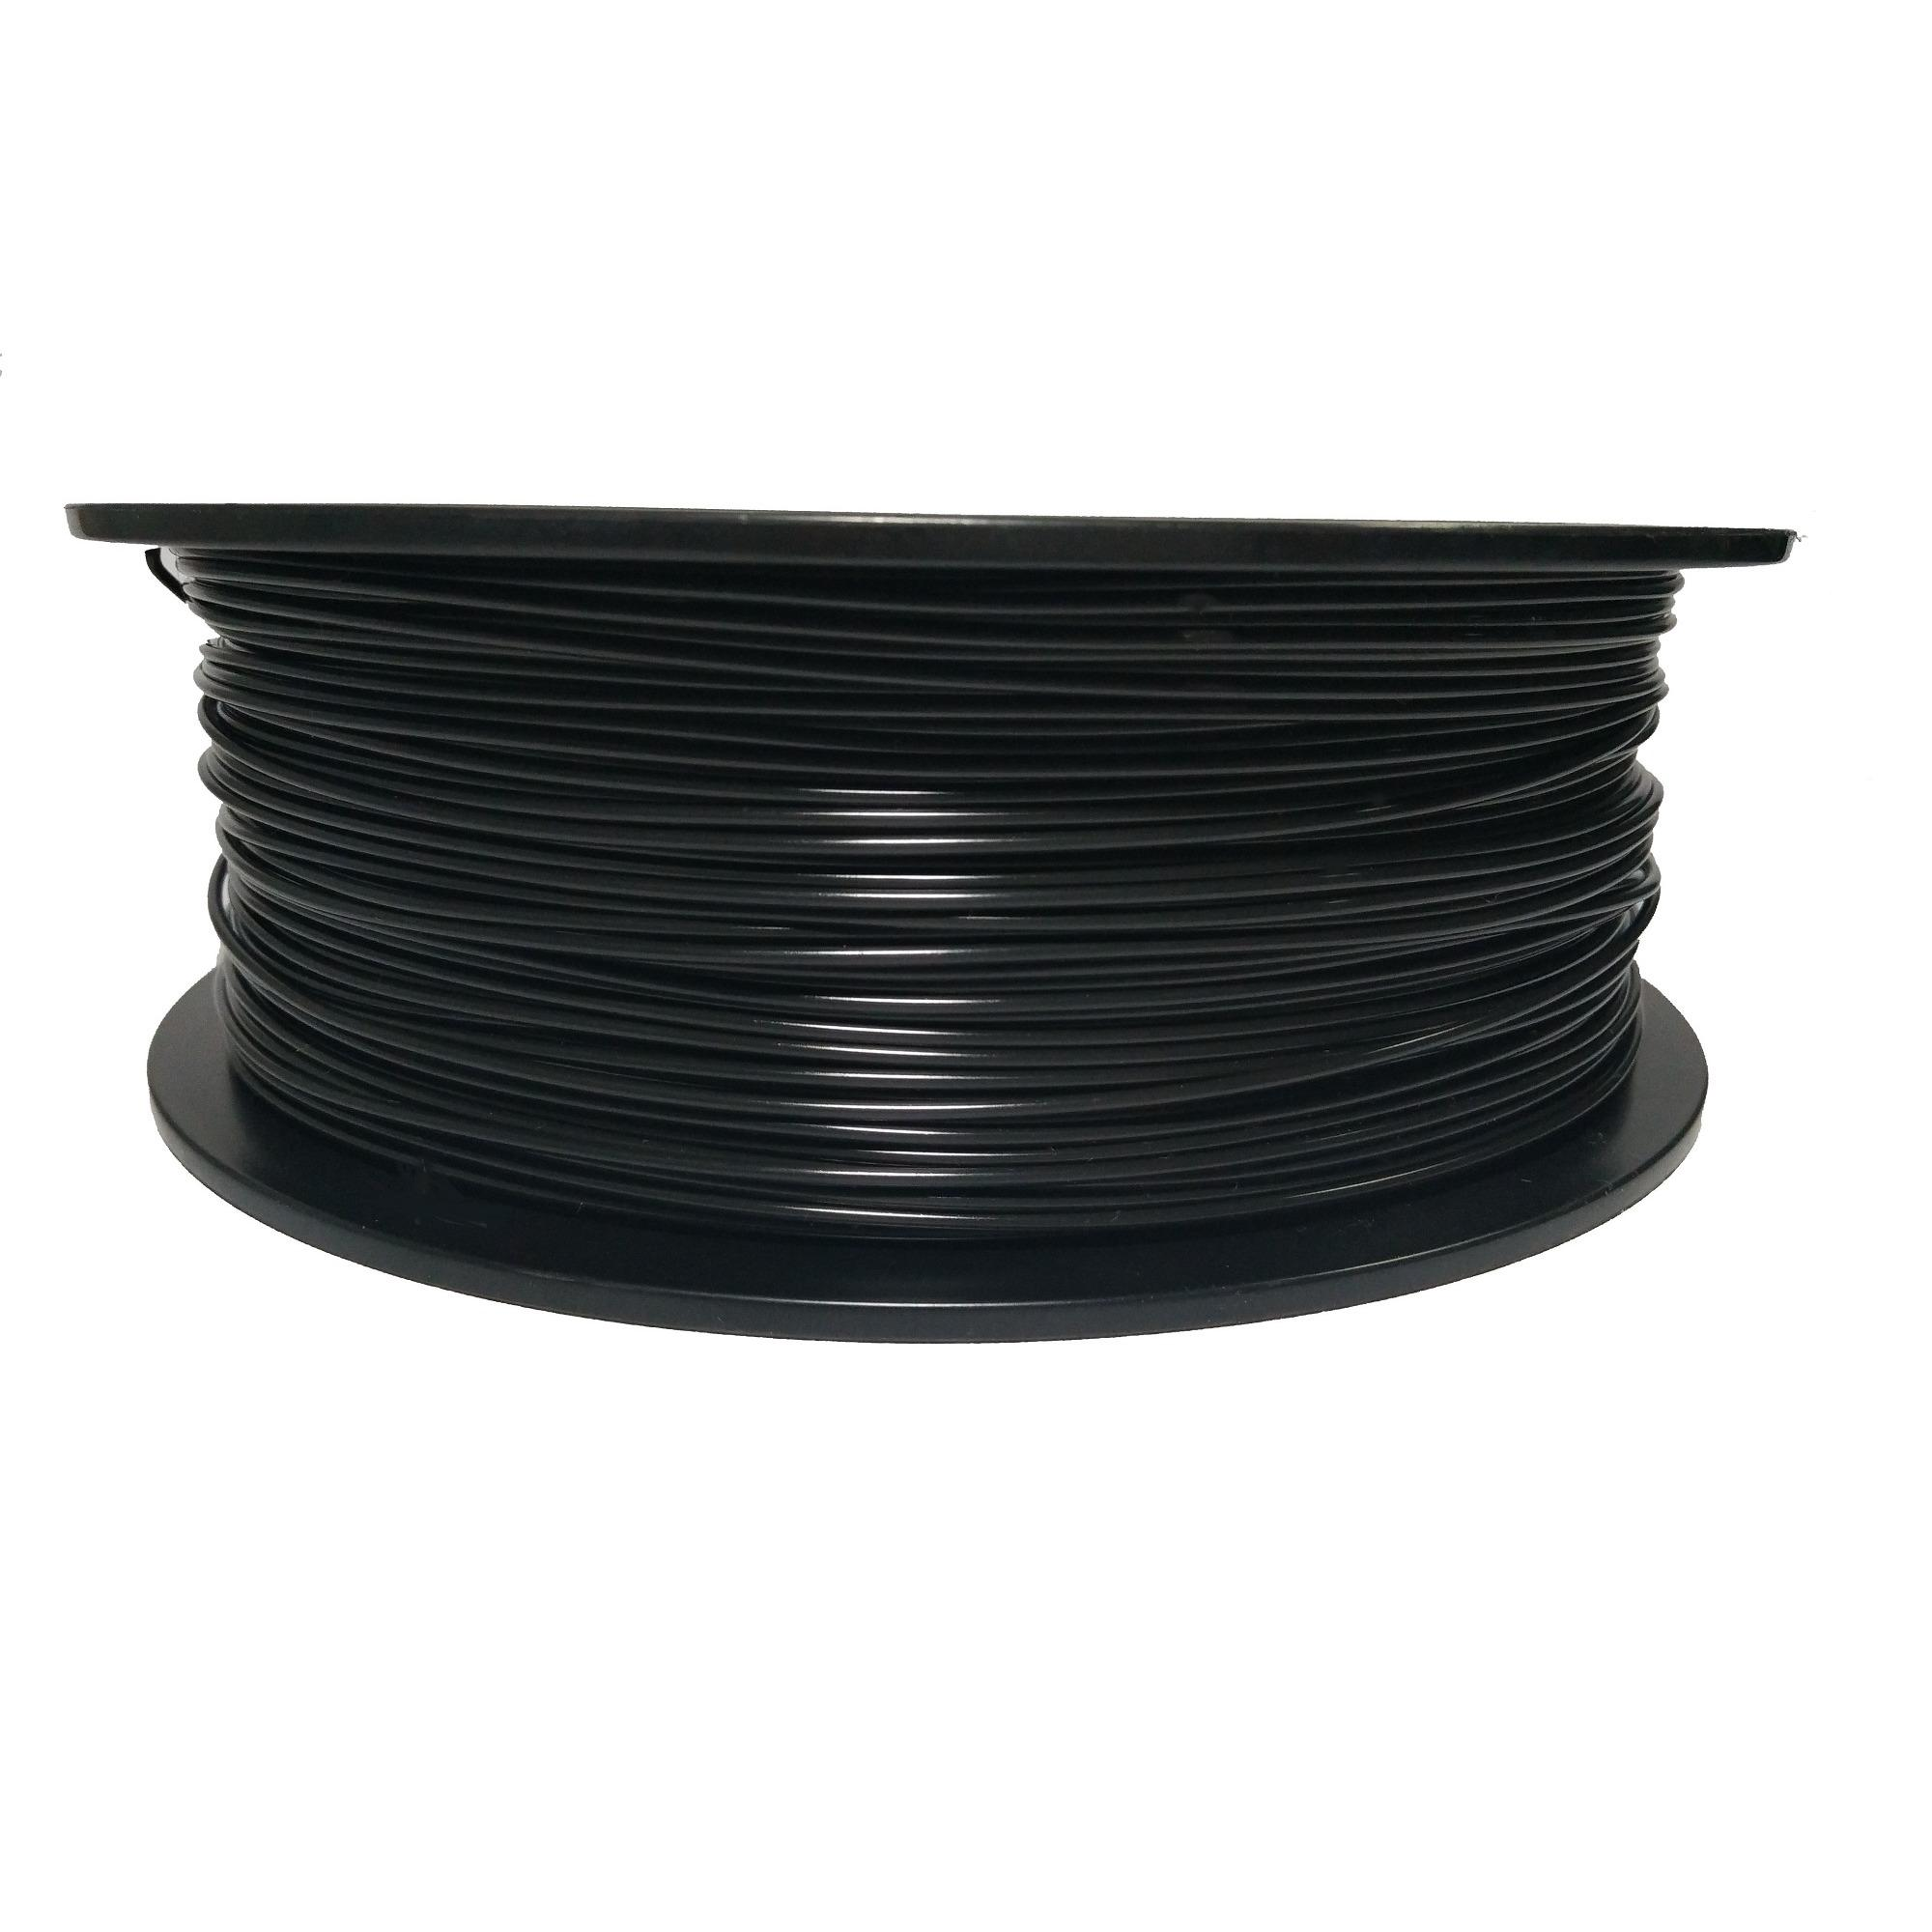 Best Buy Black Petg Filament For 3D Printer 1 75Mm 1Kg